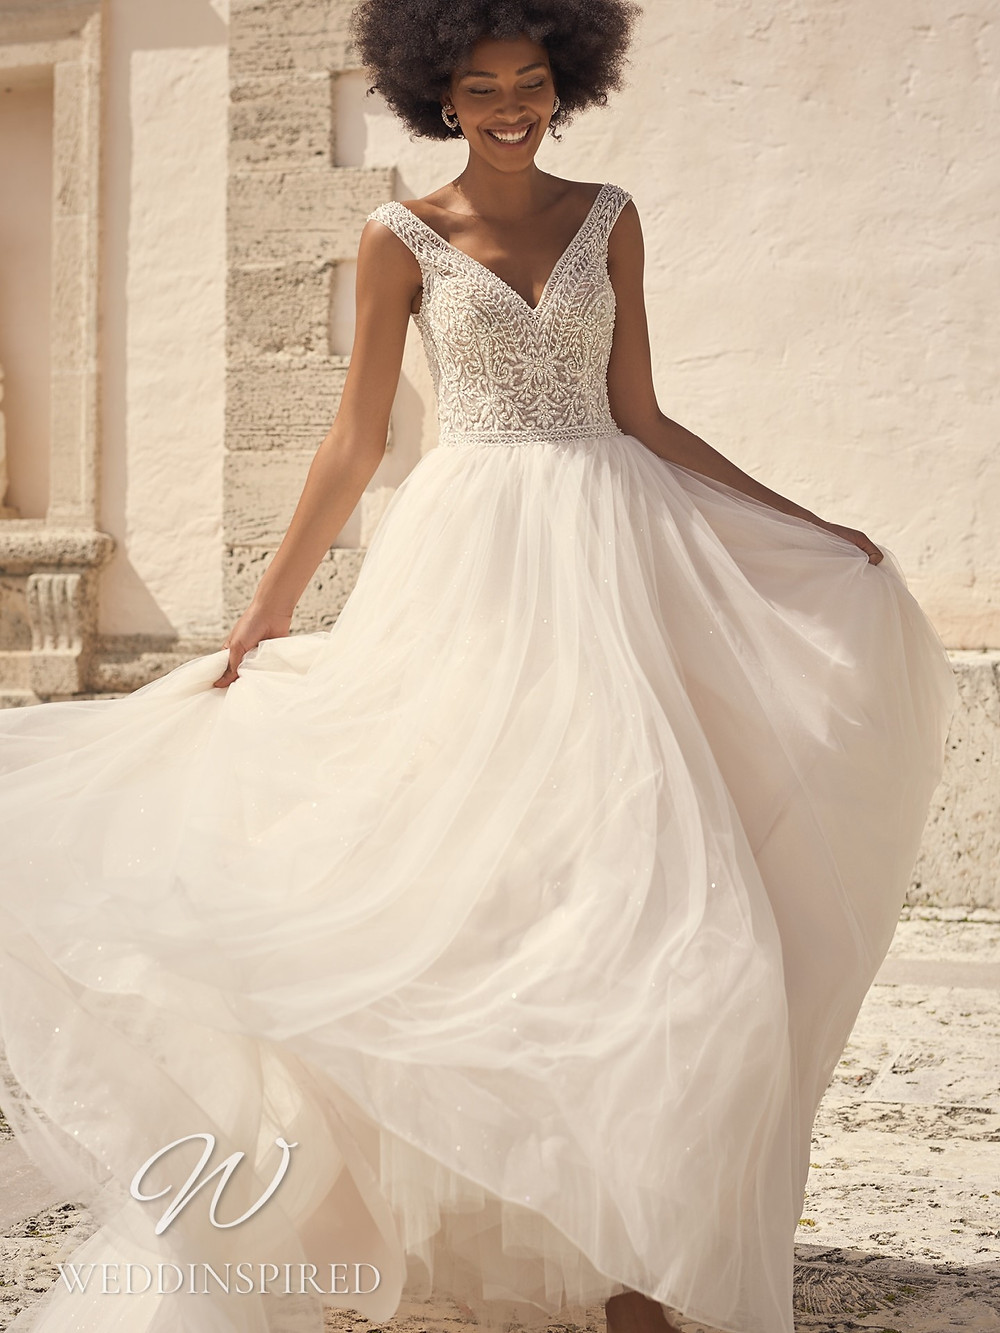 A Sottero & Midgley 2021 beading and tulle A-line wedding dress